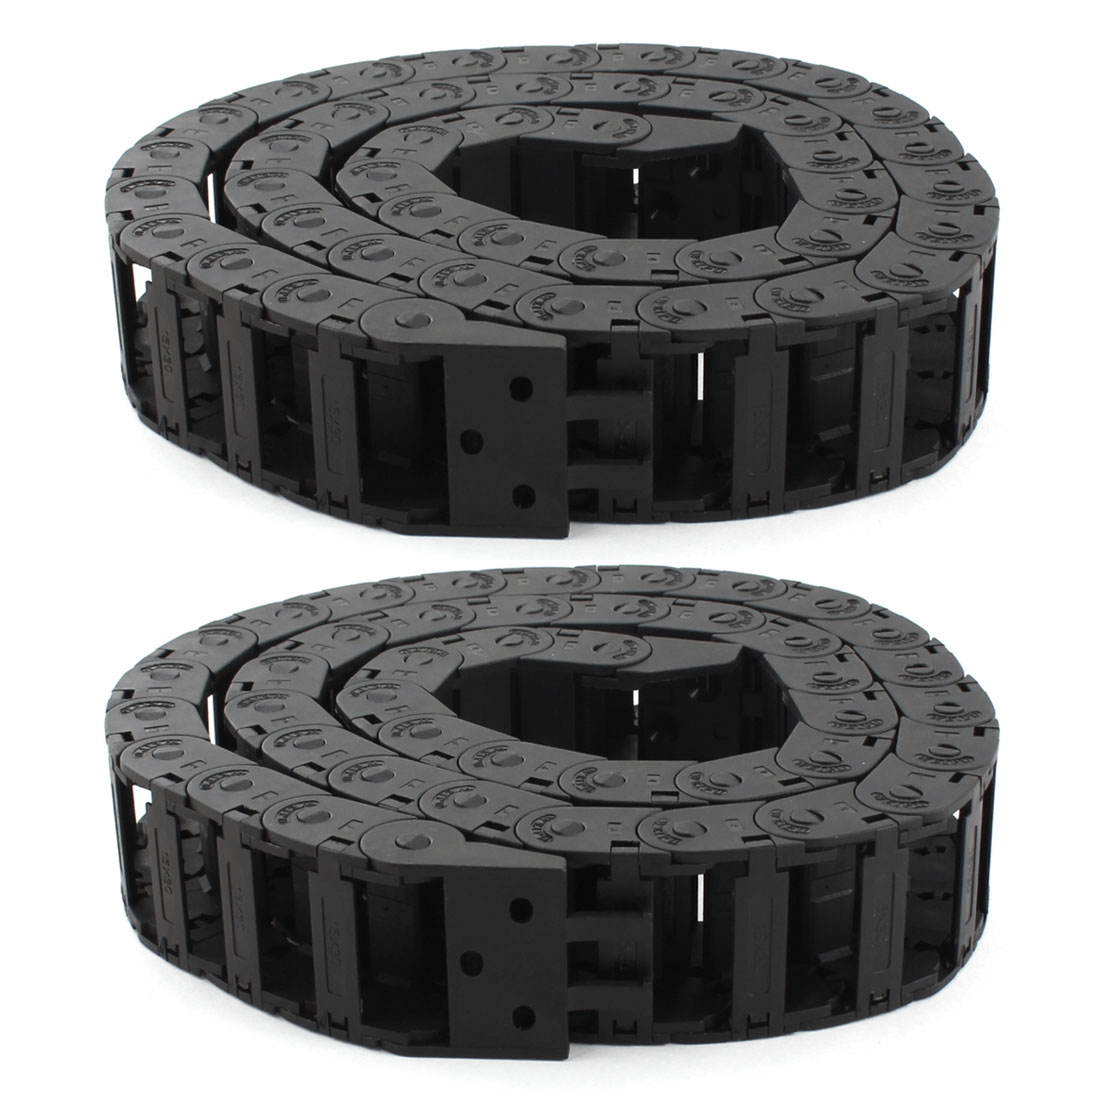 2pcs 1Meter 33ft Long 15mm x 30mm Black Plastic Towline Cable Drag Chain